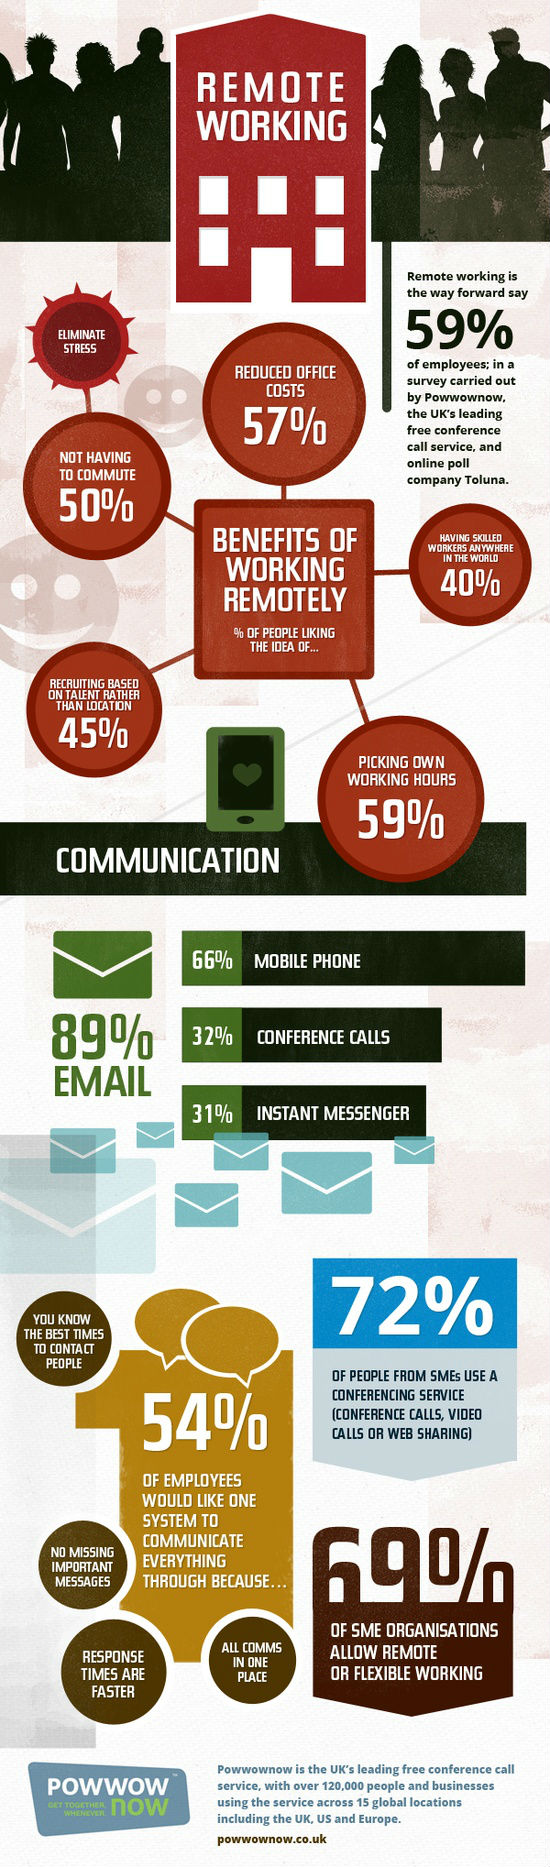 The Benefits to Remote Working Infographic